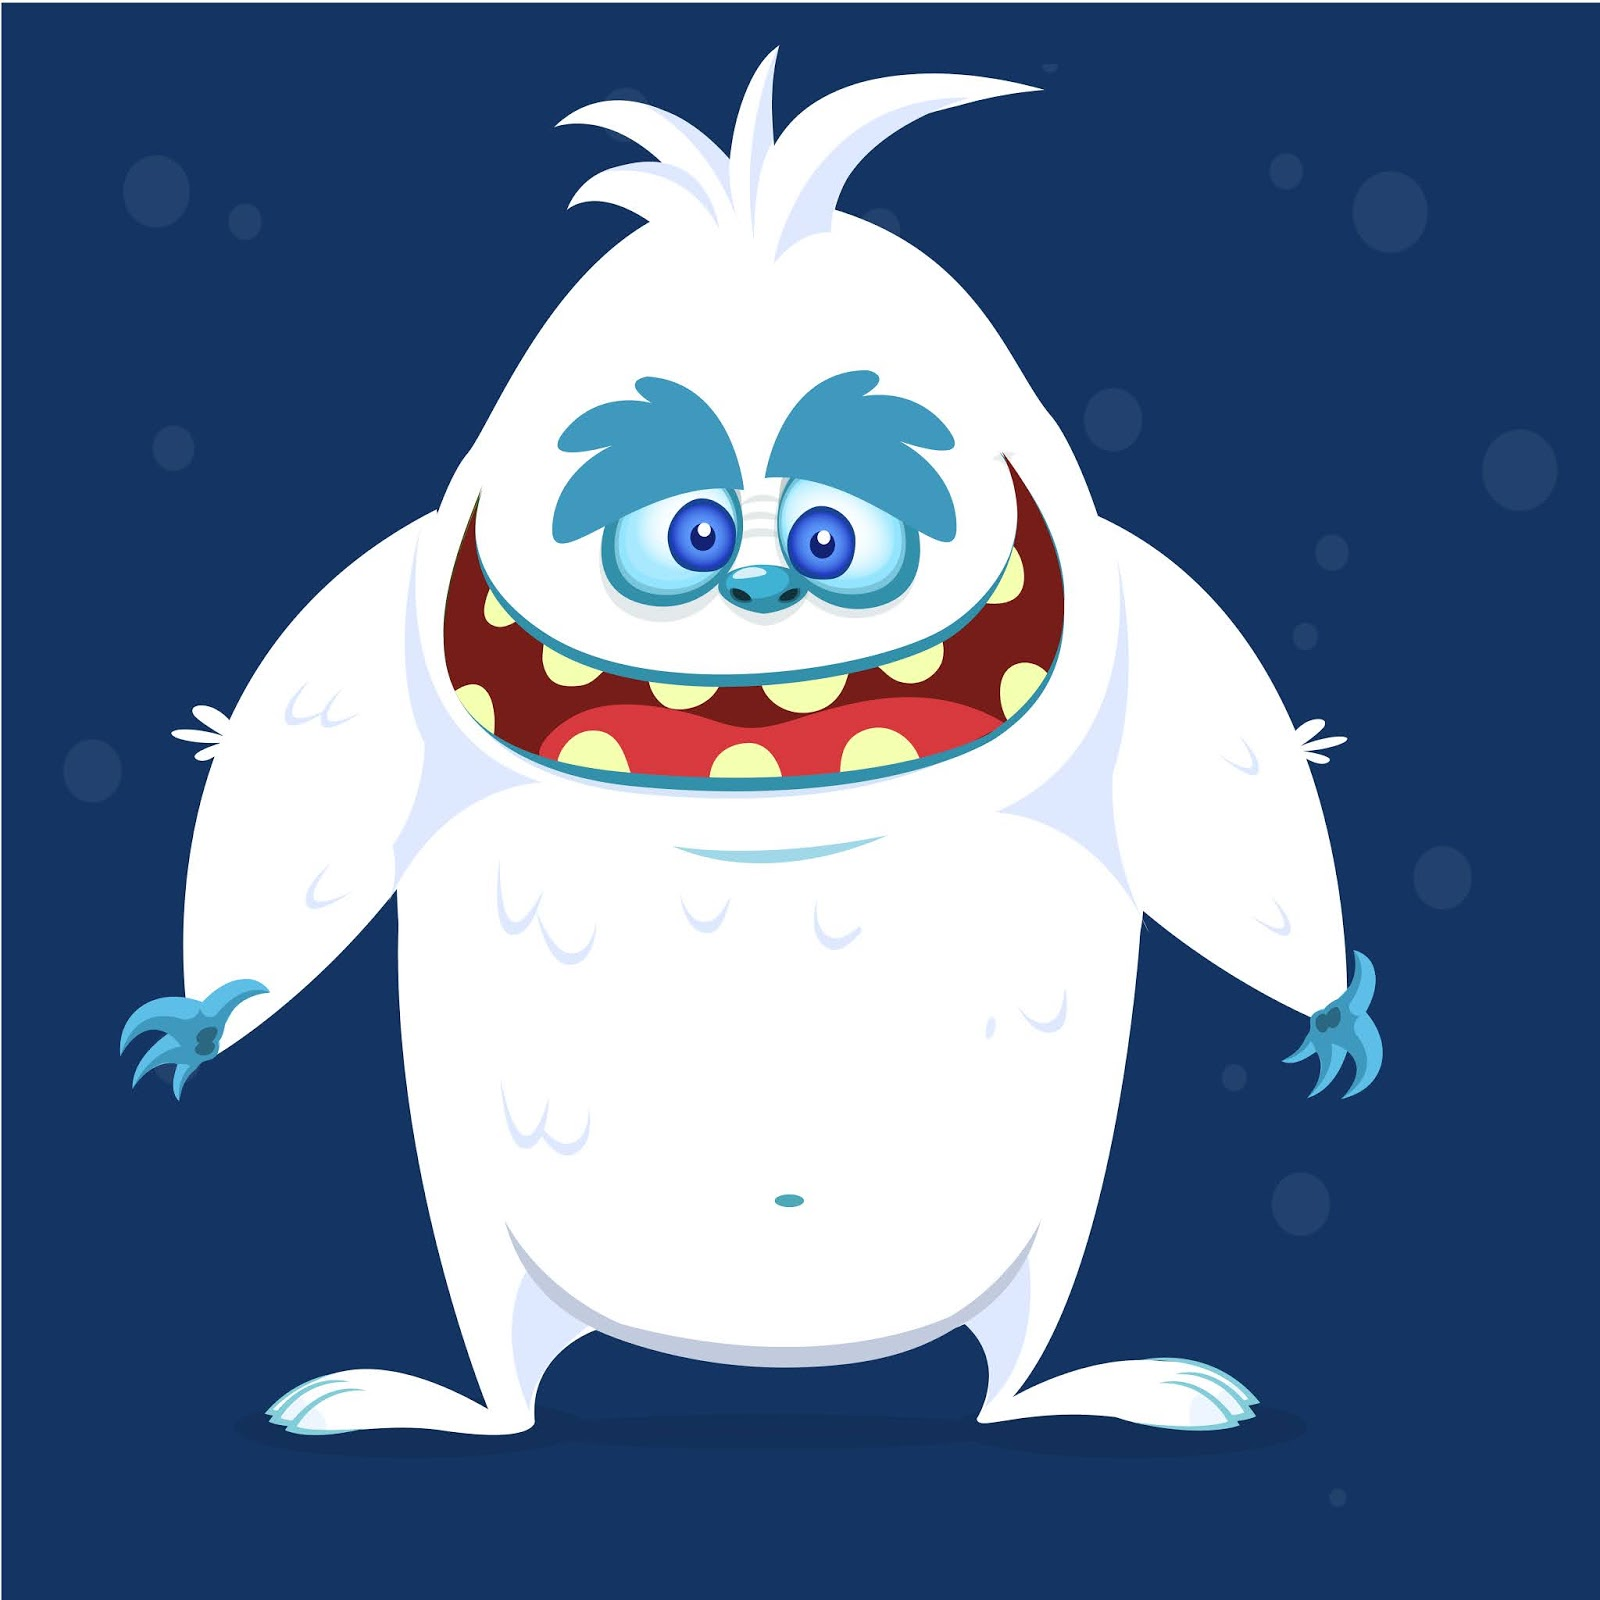 Happy Cartoon Monster Yeti Bigfoot Free Download Vector CDR, AI, EPS and PNG Formats